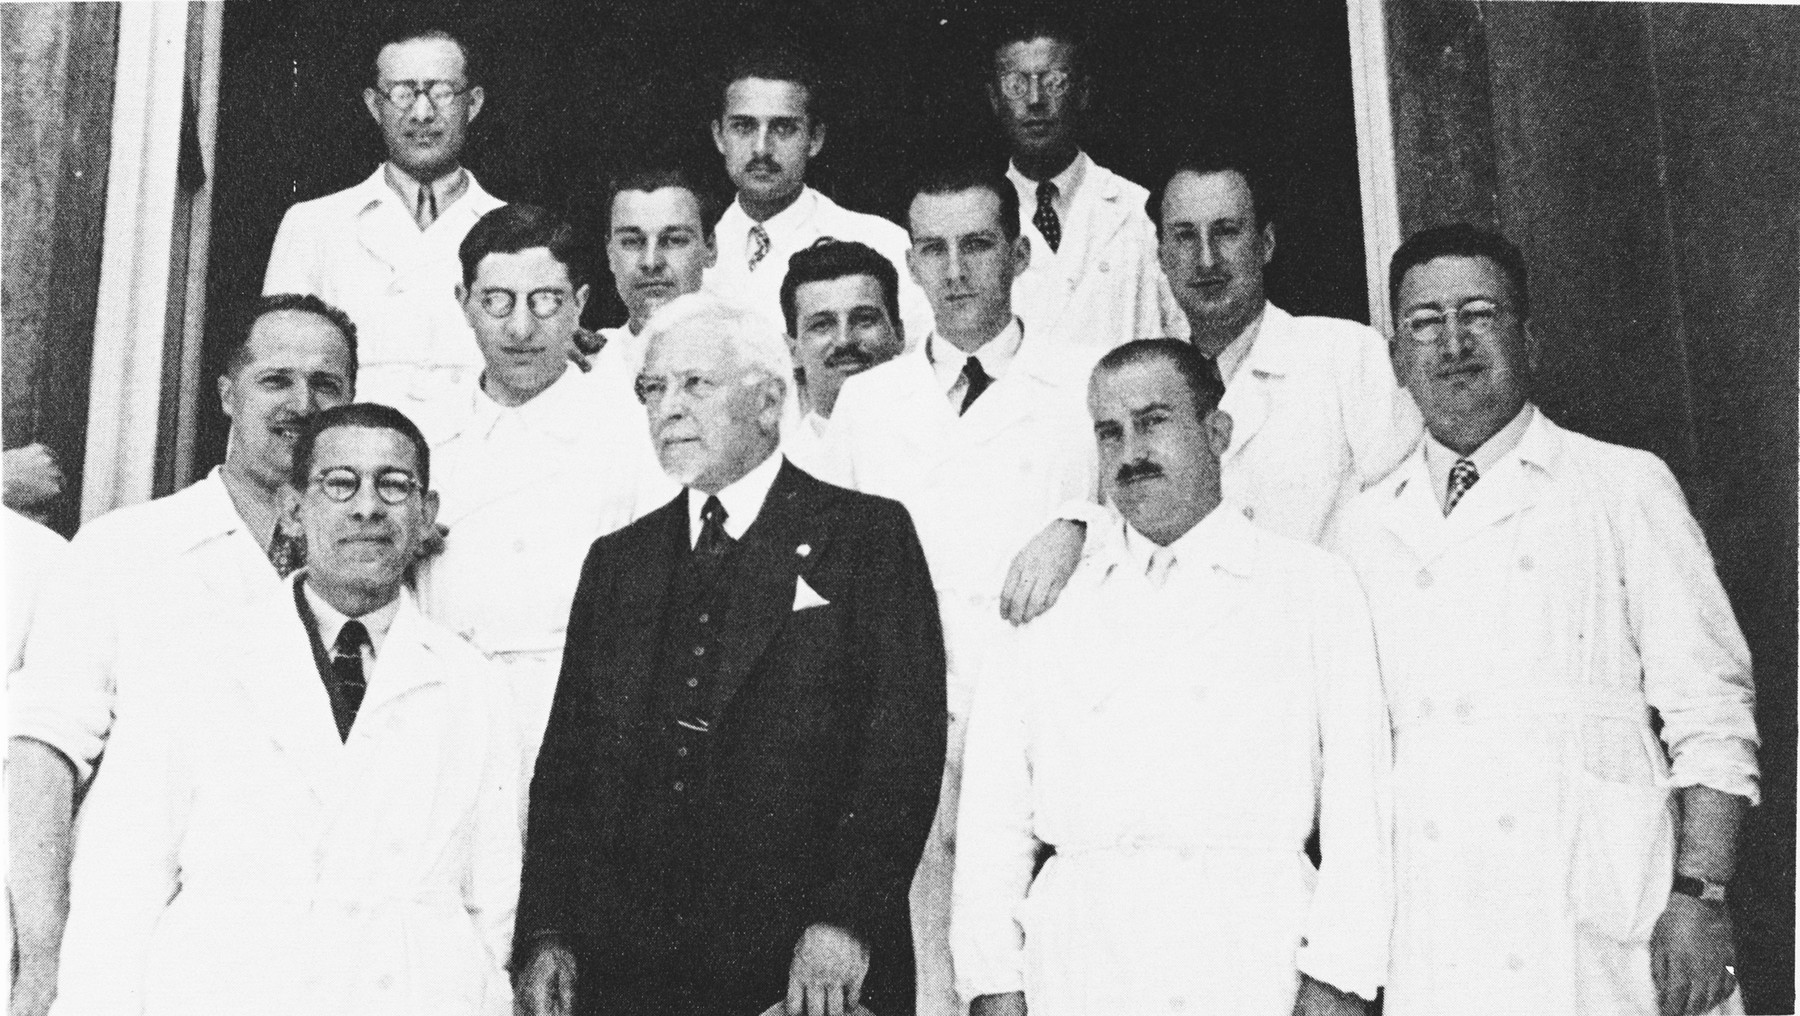 Group portrait of medical students and faculty of the University of Florence.  Nathan Cassuto is standing in the second row, second from the left.